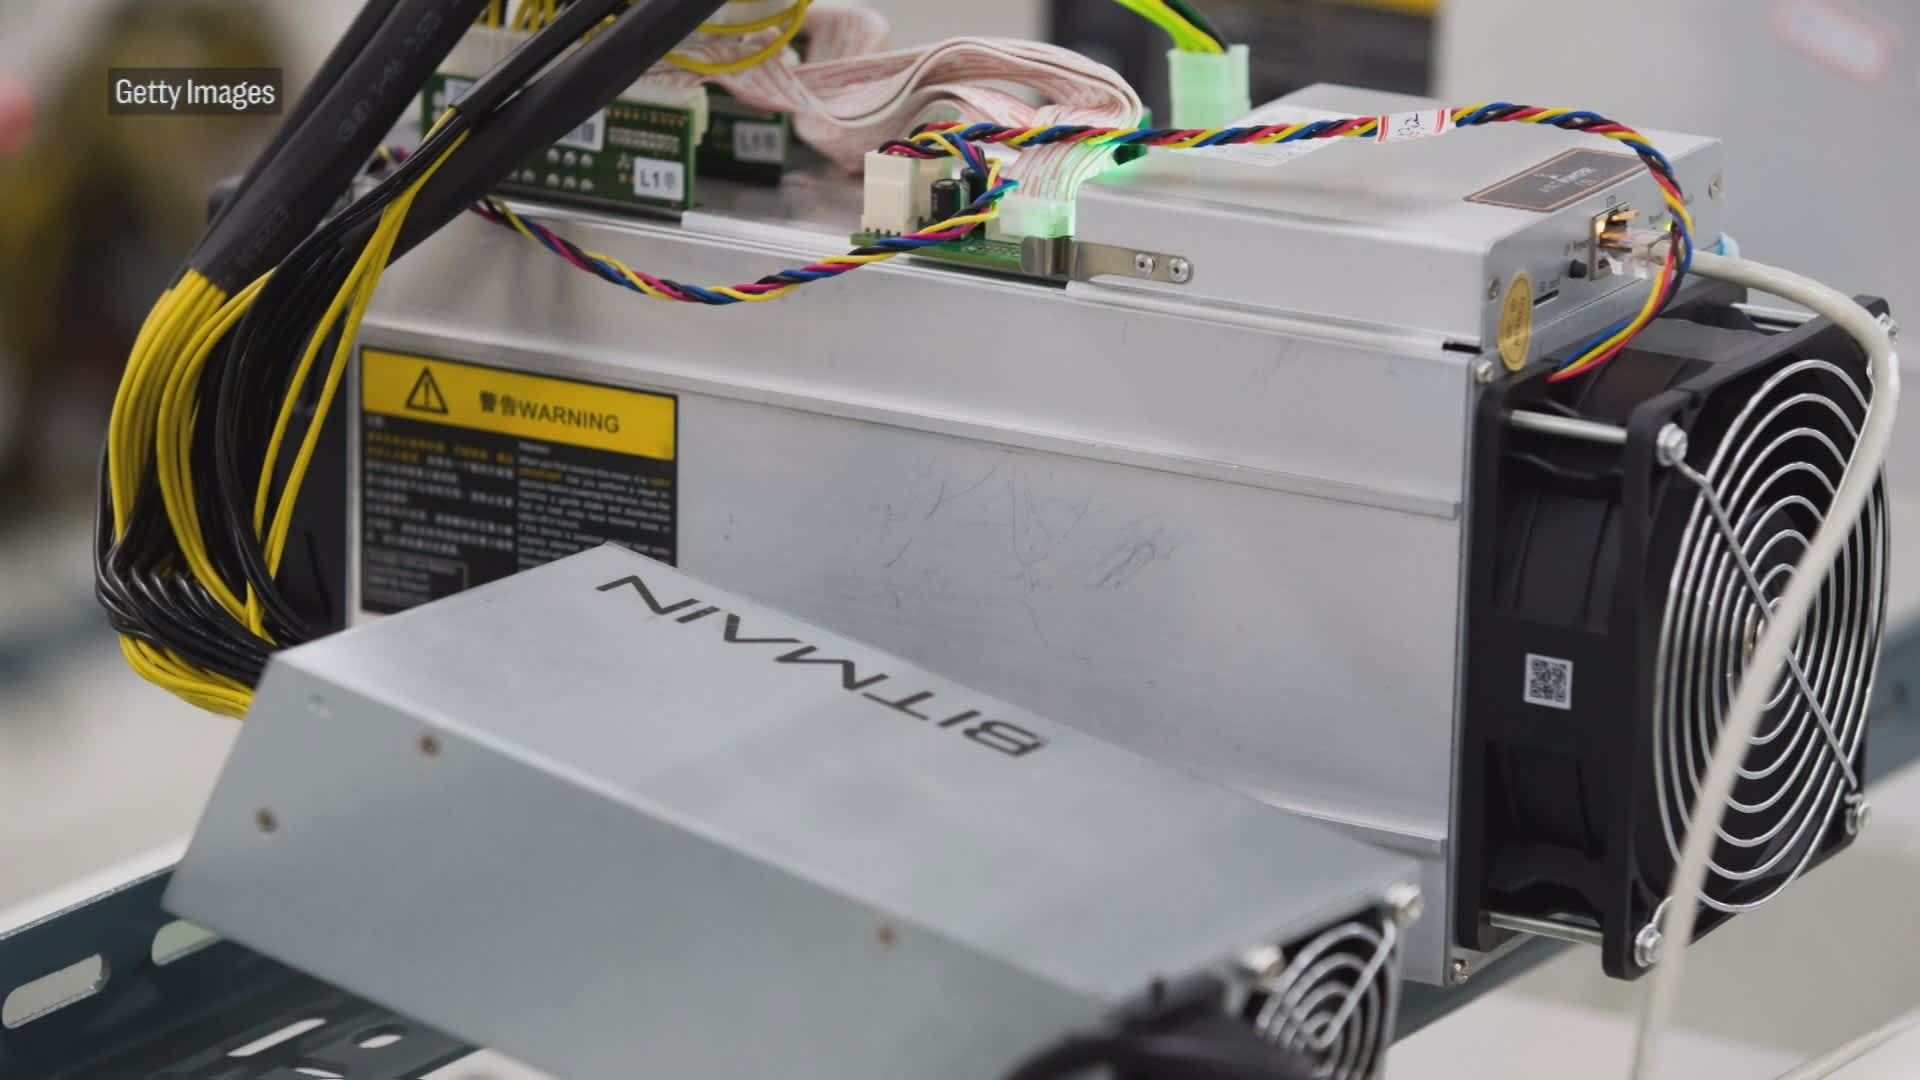 Chinese bitcoin mining Bitmain revealed a chip that could hurt AMD